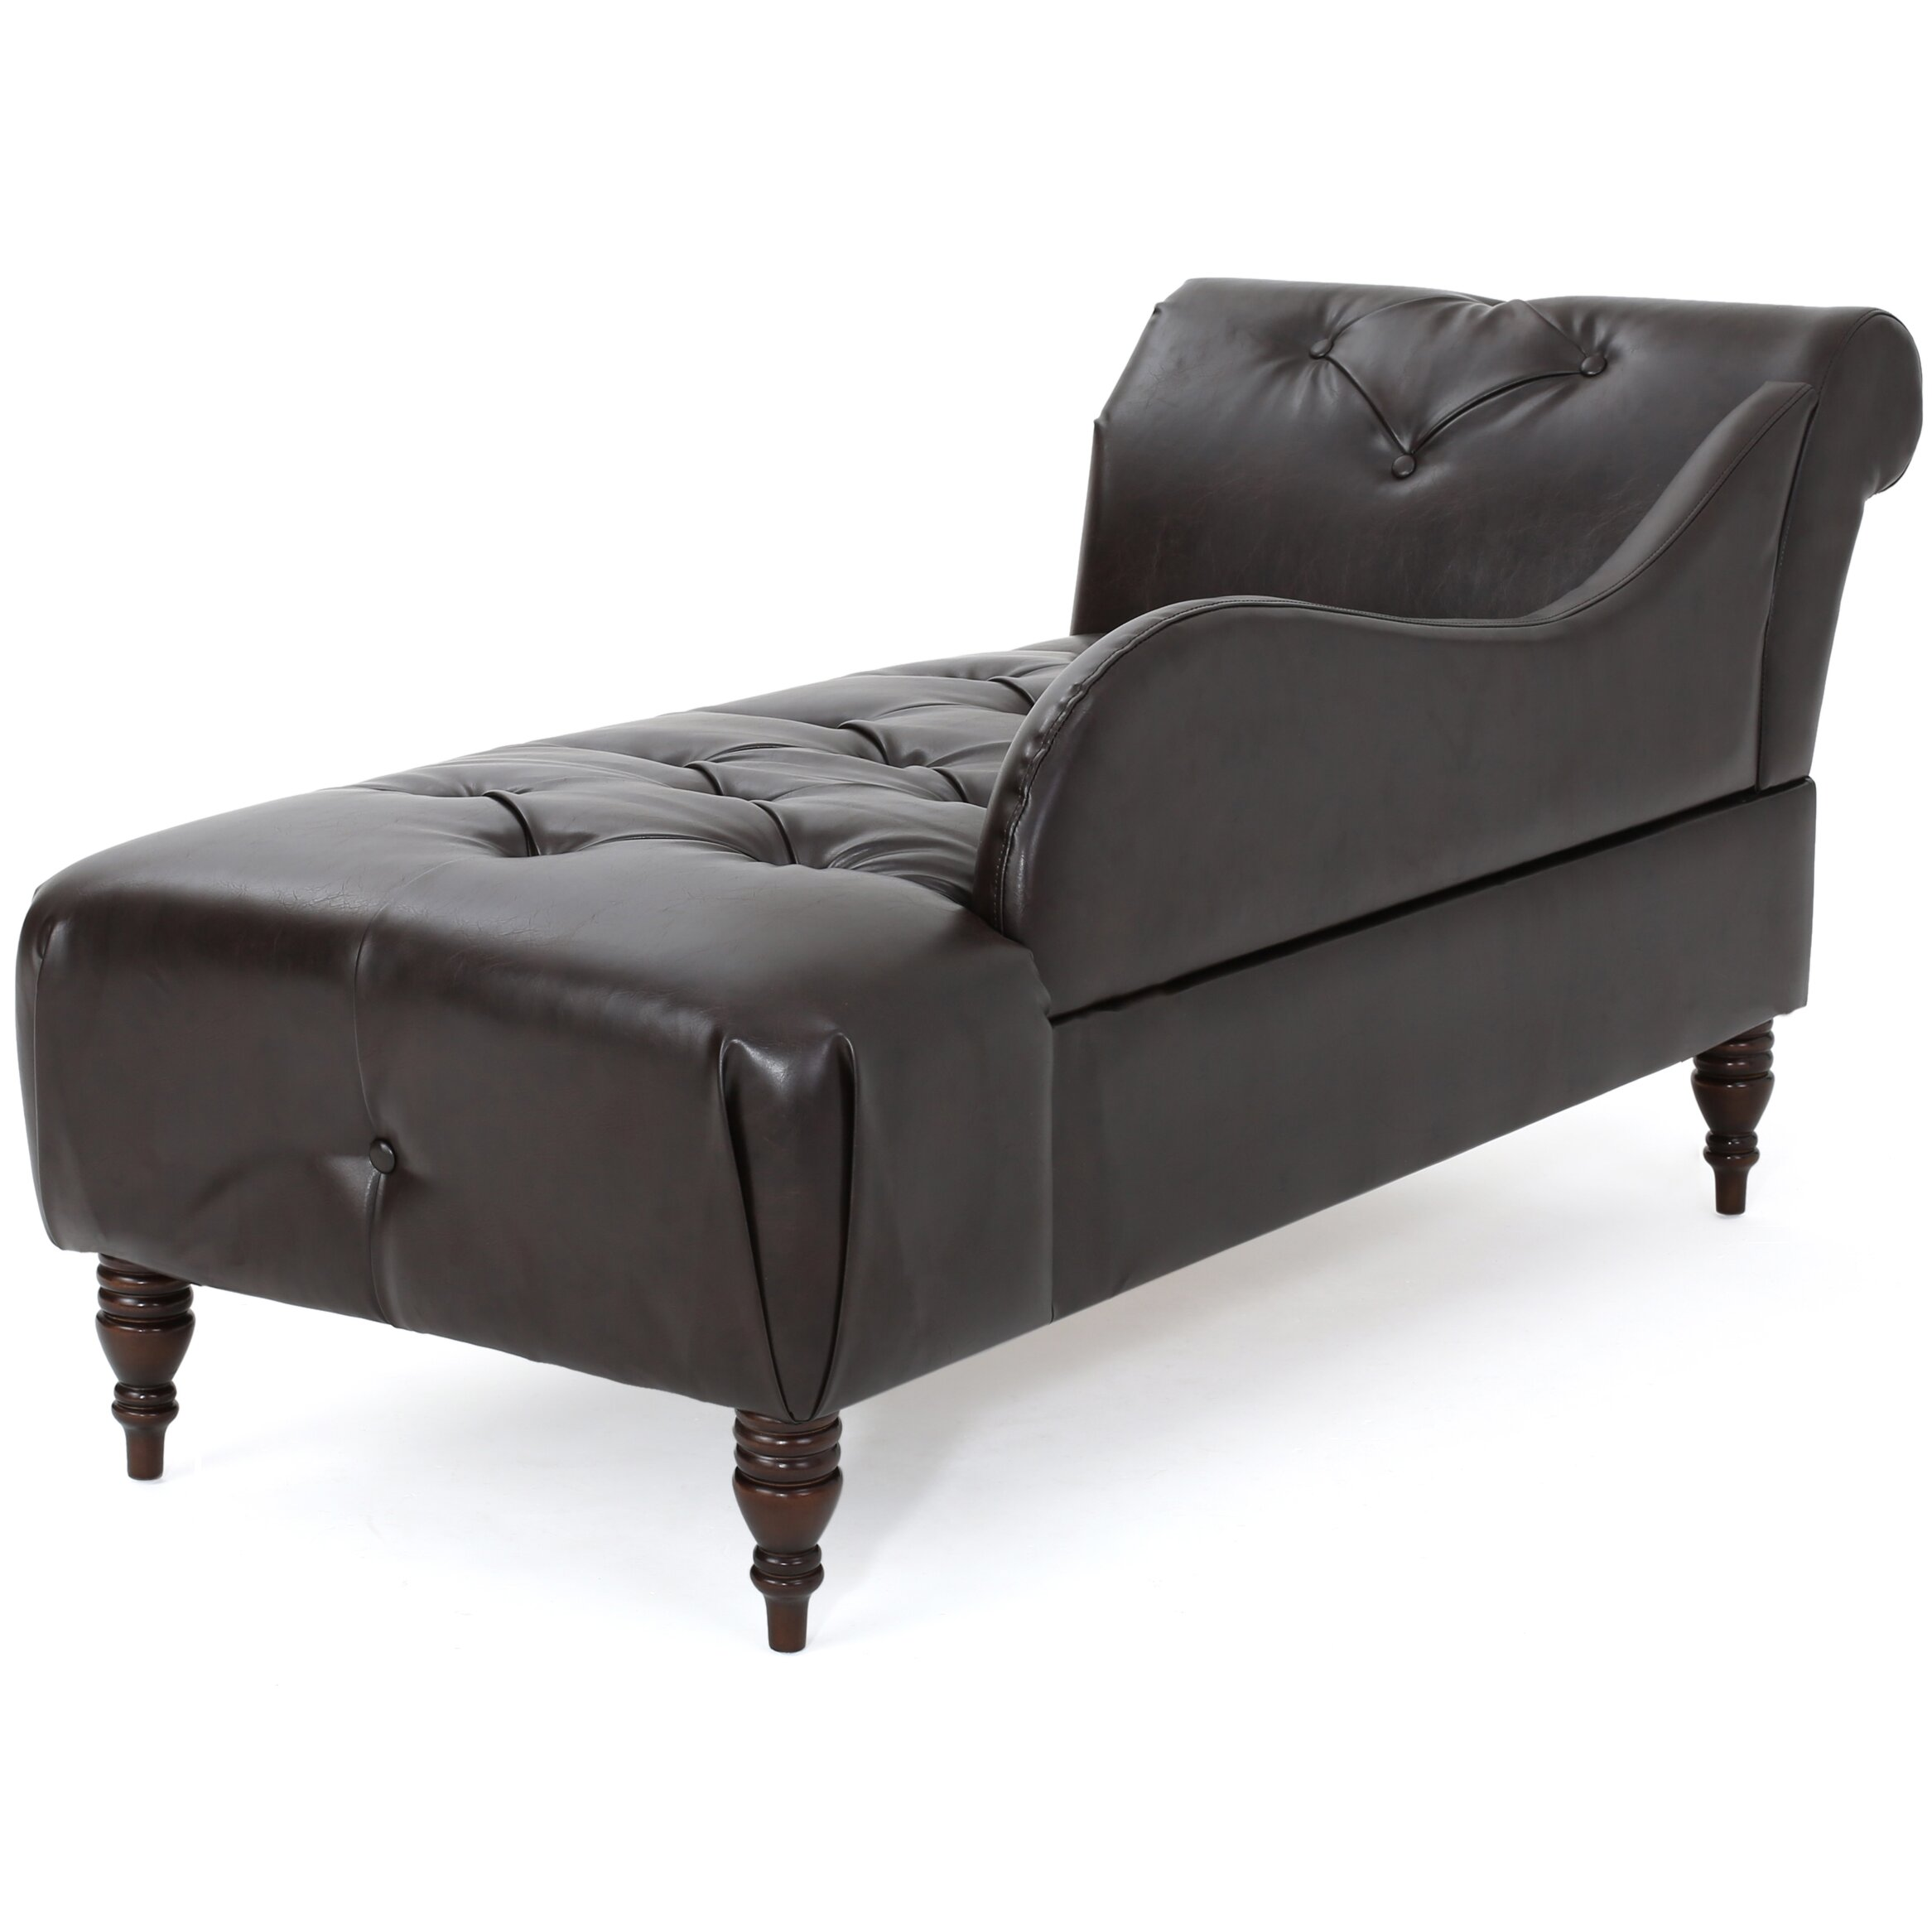 Mercer41 hurd leather tufted chaise lounge for Bellagio leather chaise lounge